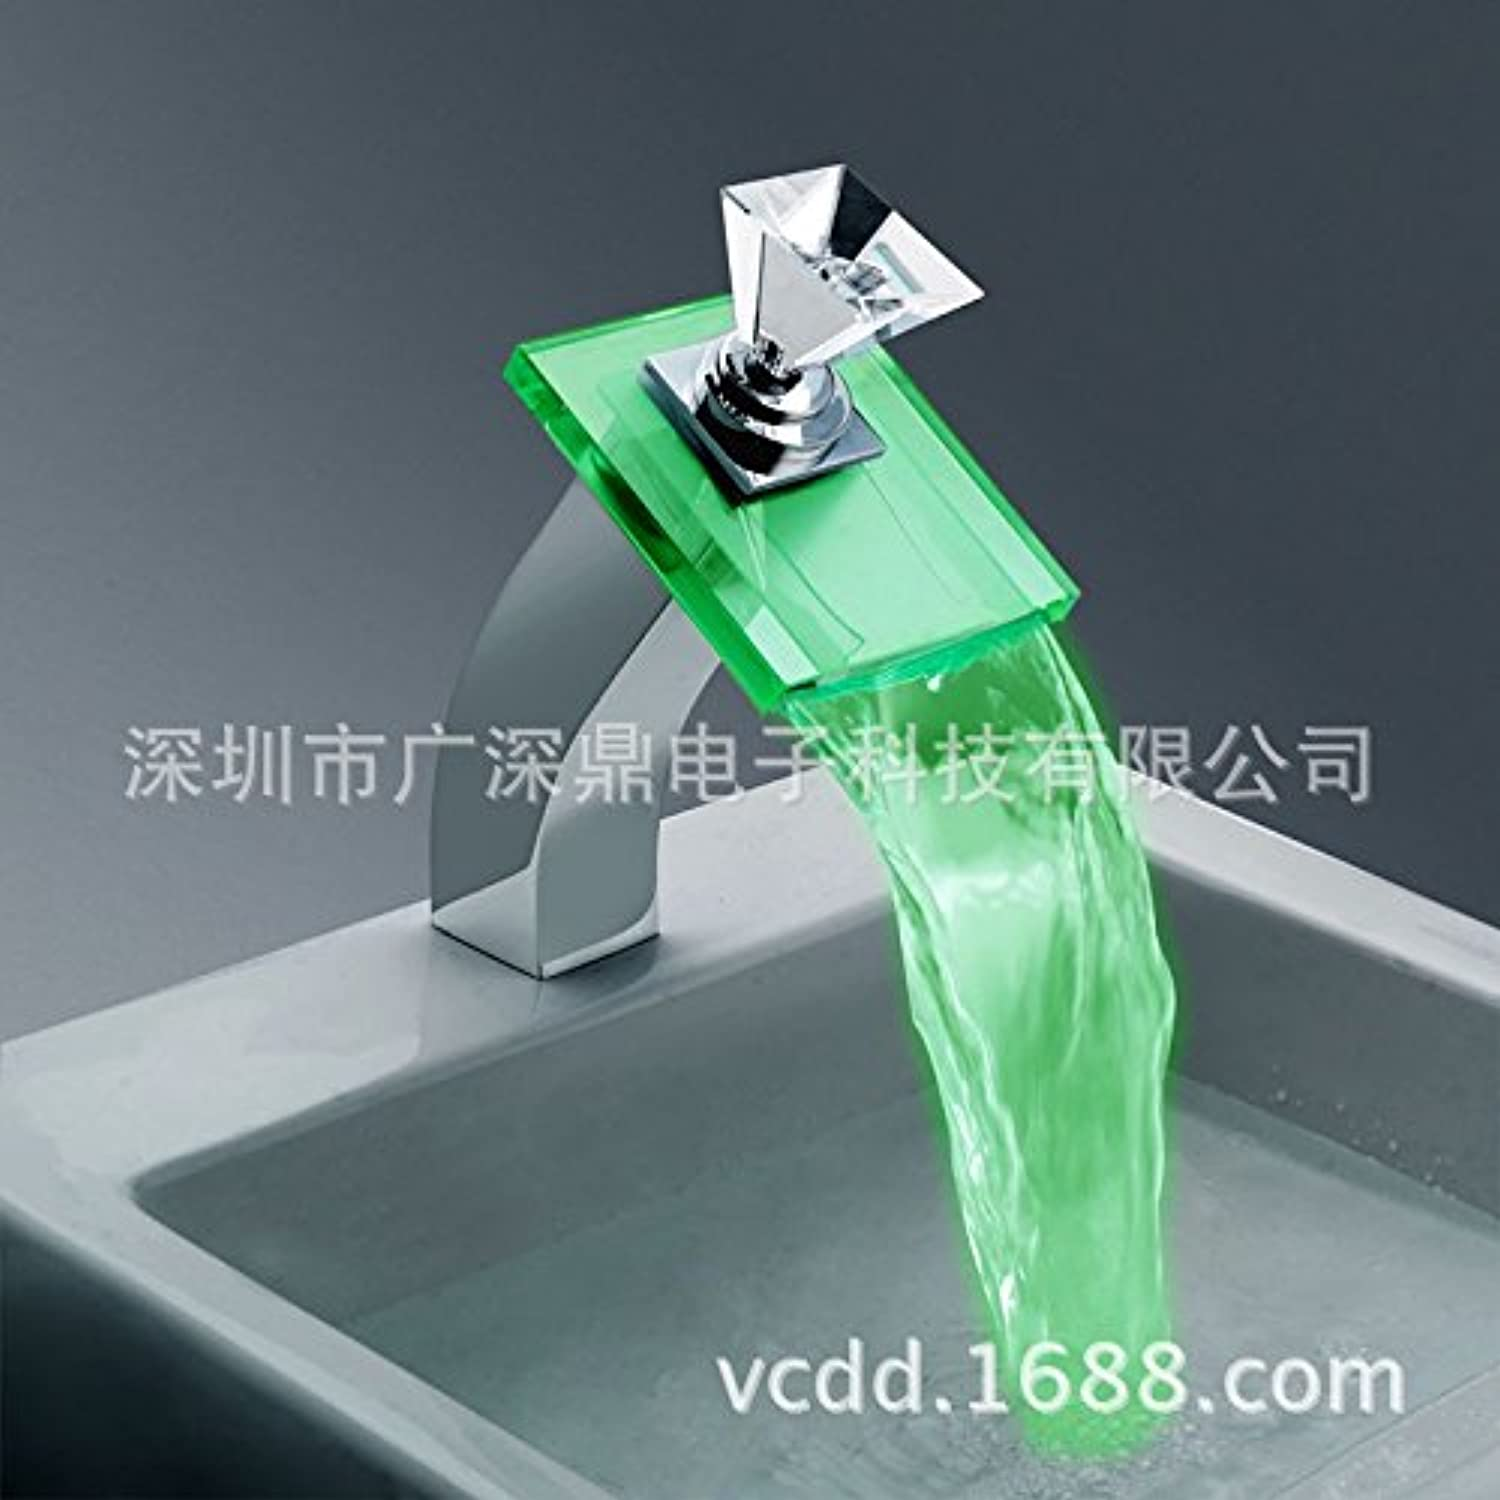 redOOY Waterfall faucet_led waterfall faucet crystal diamond illuminating faucet heightening above counter basin